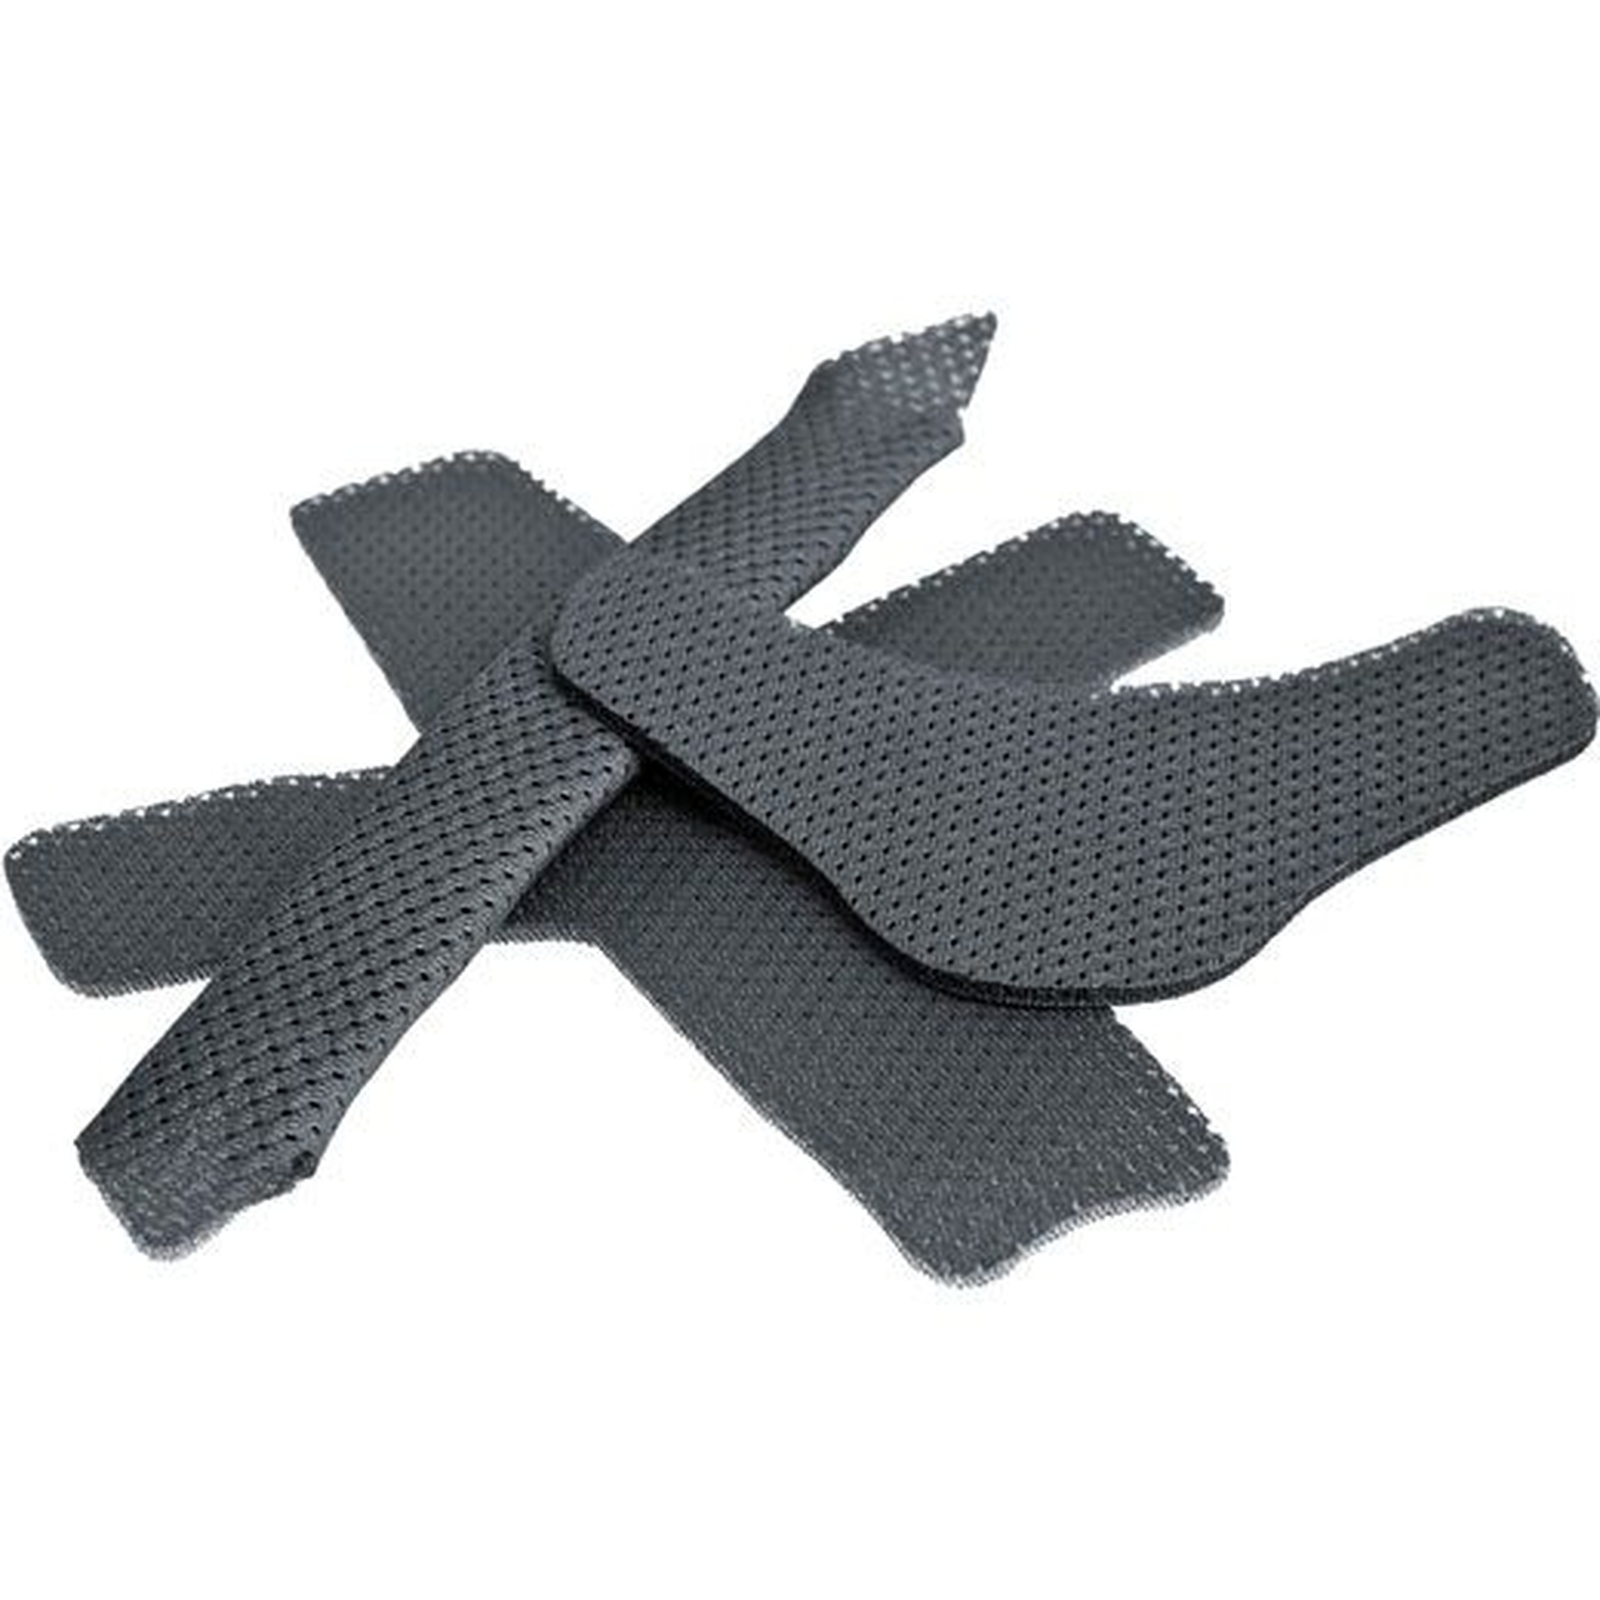 Pfanner Protos Replacement Padding